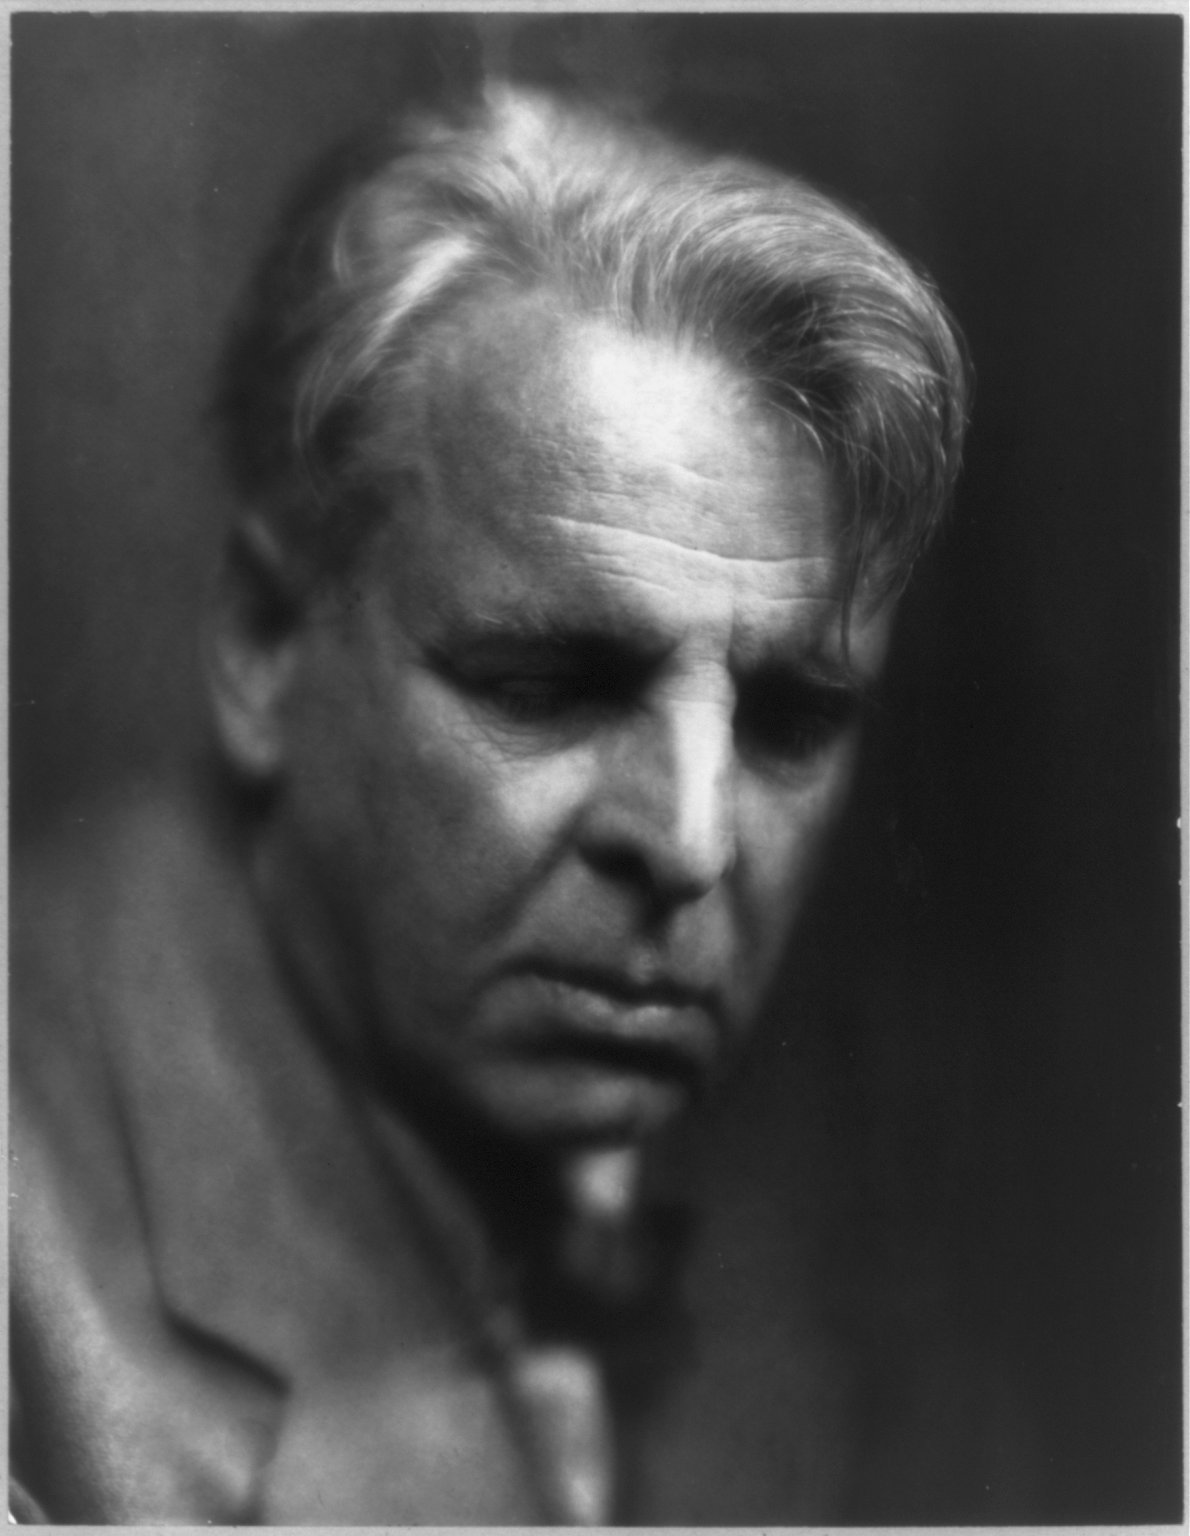 the stolen child by wb yeats essay Related essays: william butler yeats the early poetry of wb yeats william butler yeats is one of the most acclaimed poets of the 20th century yeats' the stolen child an (2012, september 22) retrieved april 17, 2018.